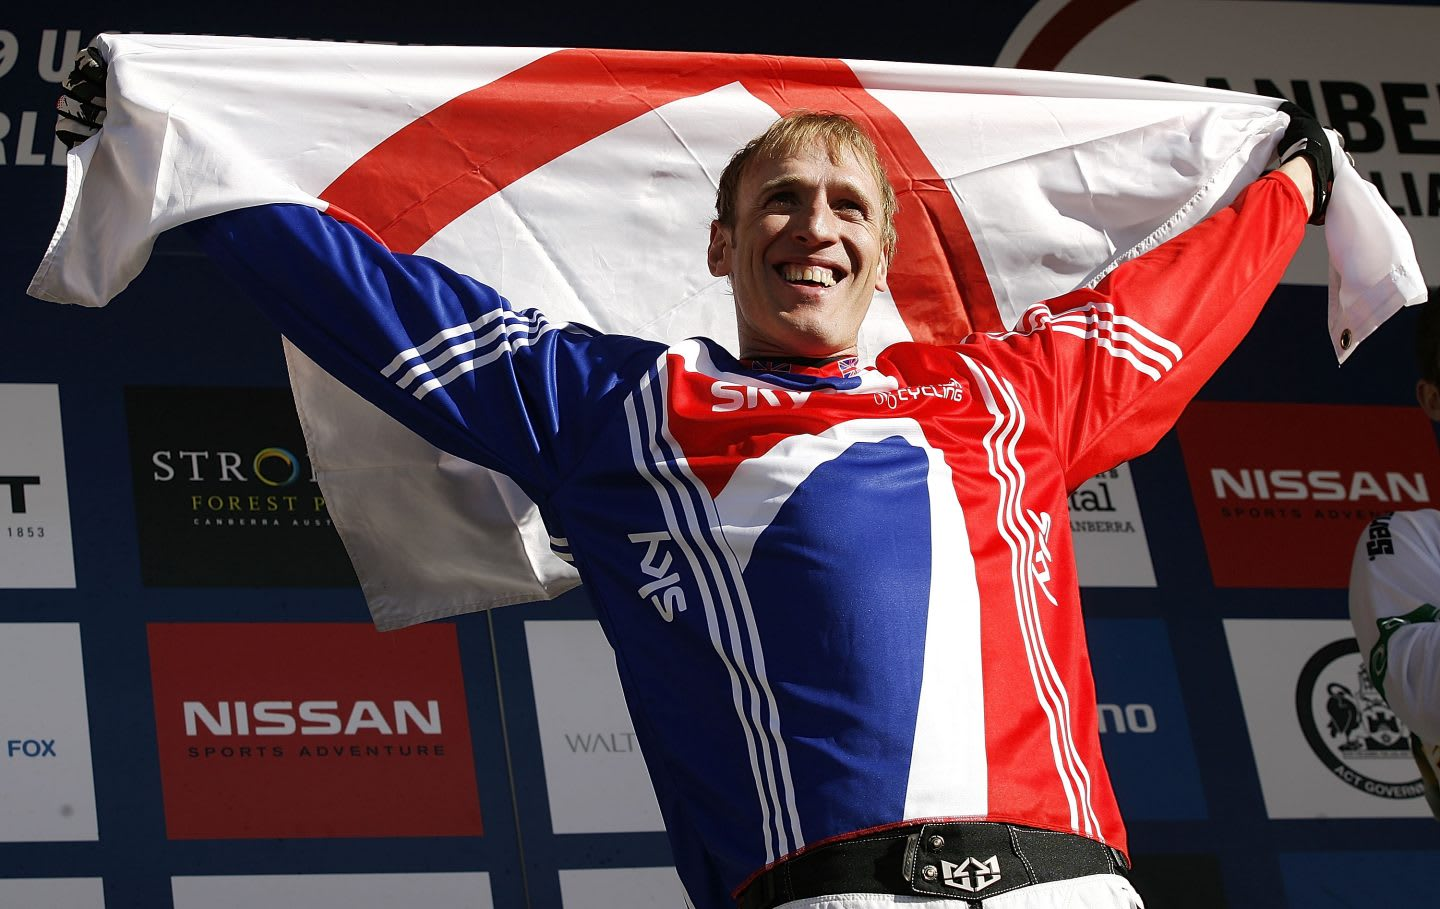 Steve Peat holding English flag in victory